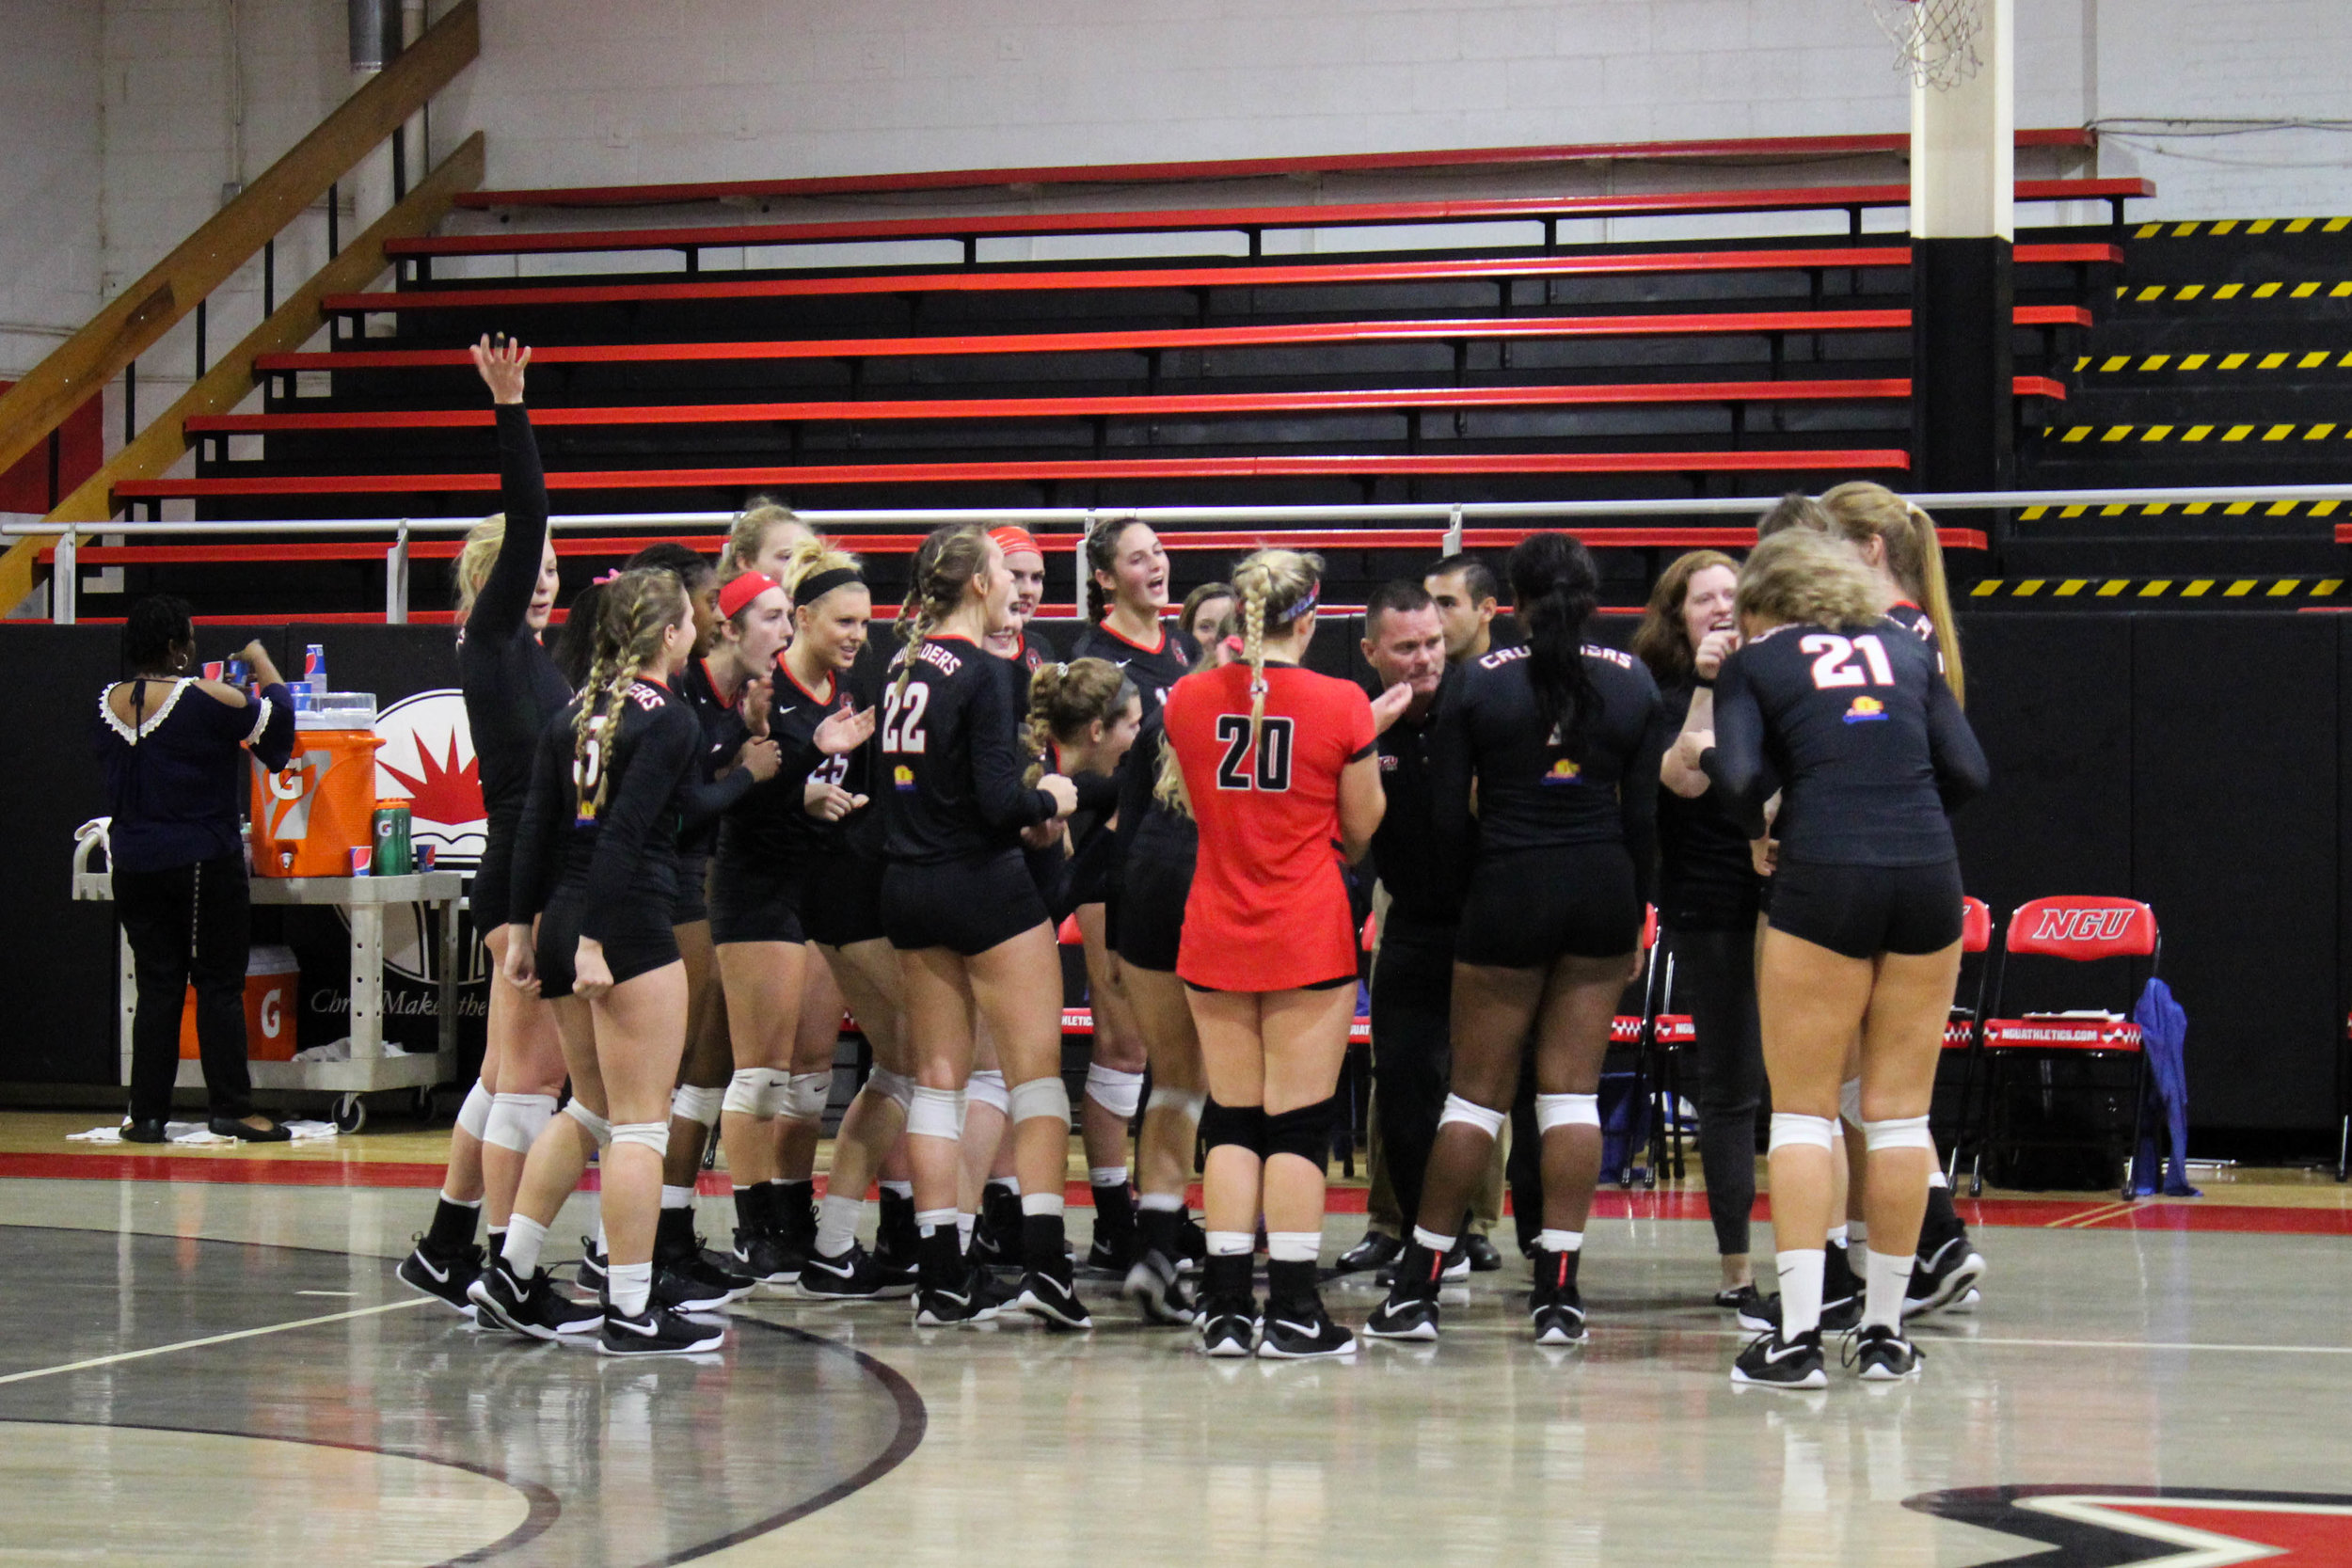 After winning a set, the NGU women's volleyball team huddle together to cheer on the players that were on the court.